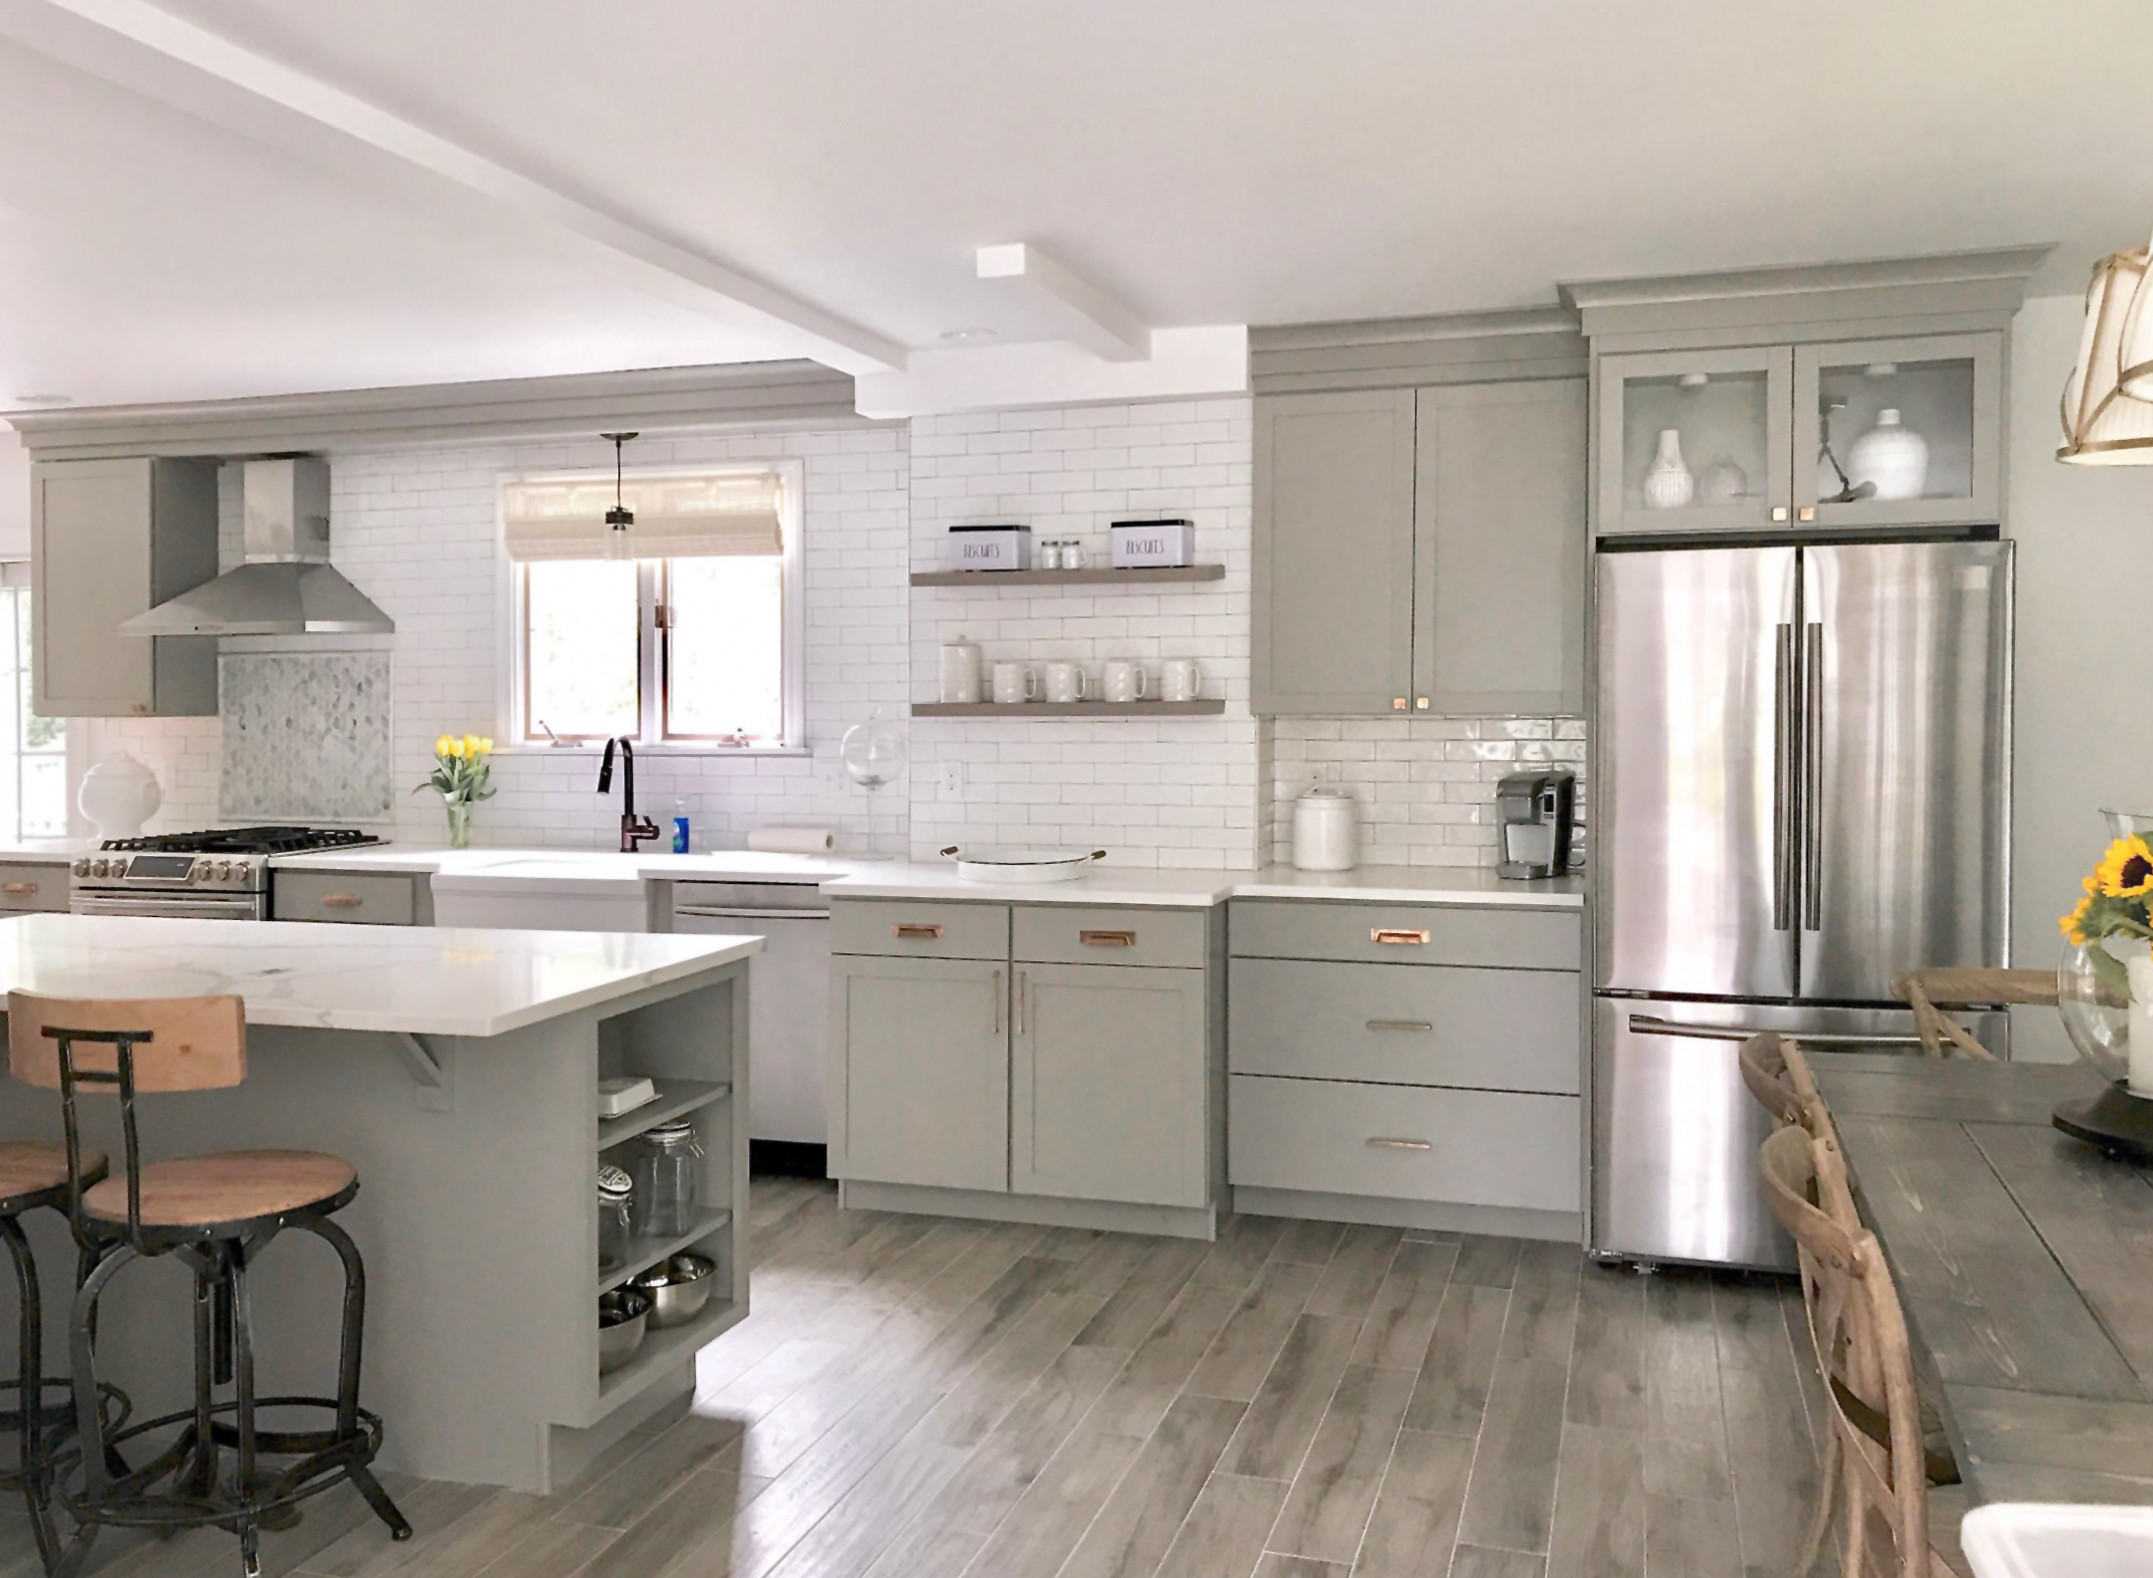 Our Episode Of HDTV's Move And Improve. A Wicked Winter Reno